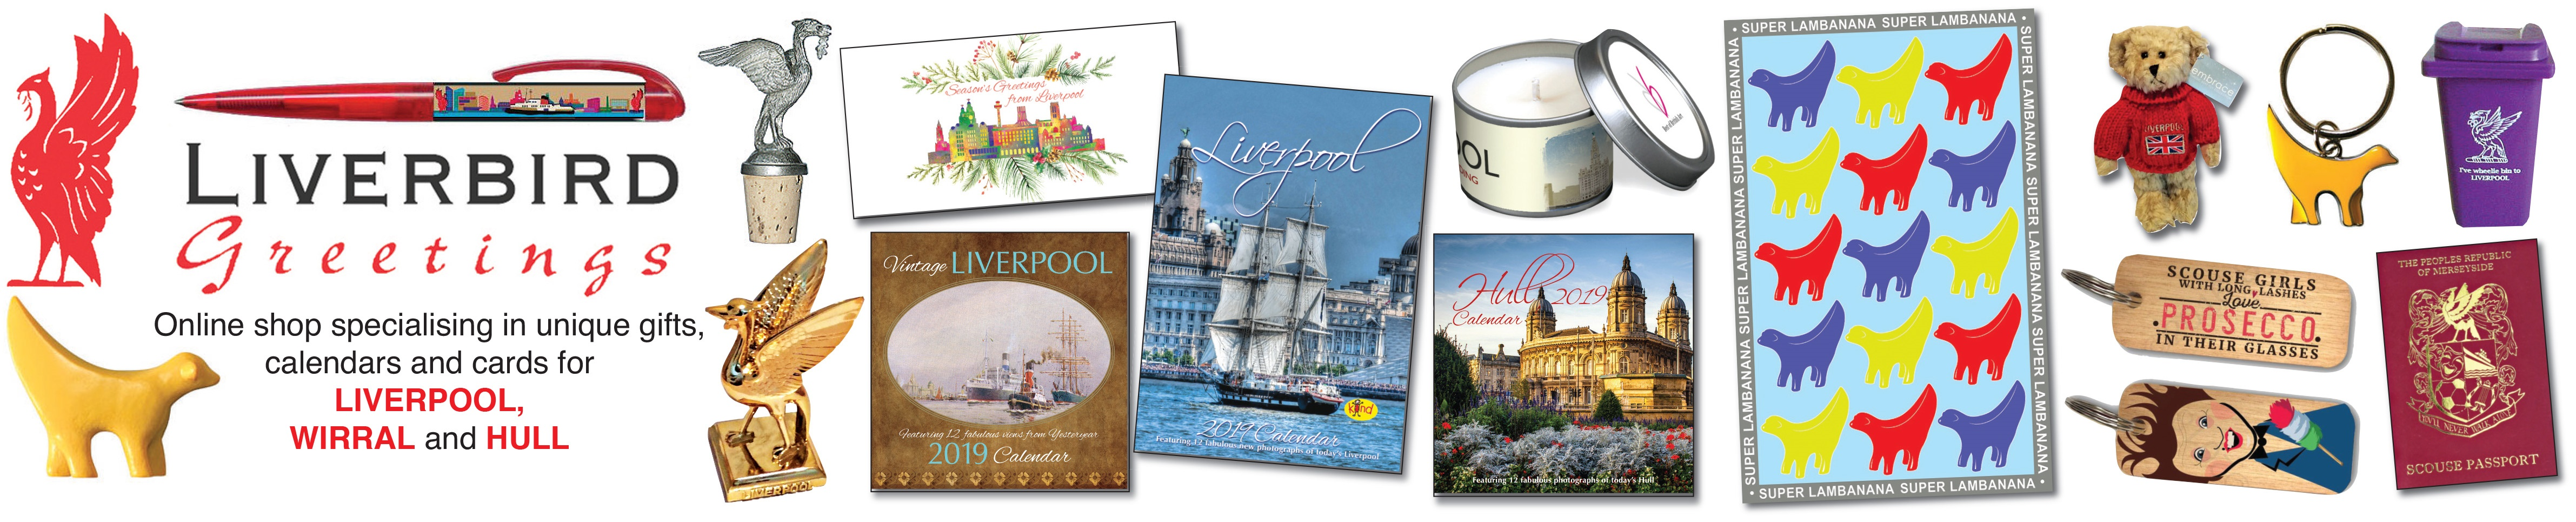 Liverpool gifts, 2018 calendars and cards, Liverpool, Wirral, Hull and Bridge Players